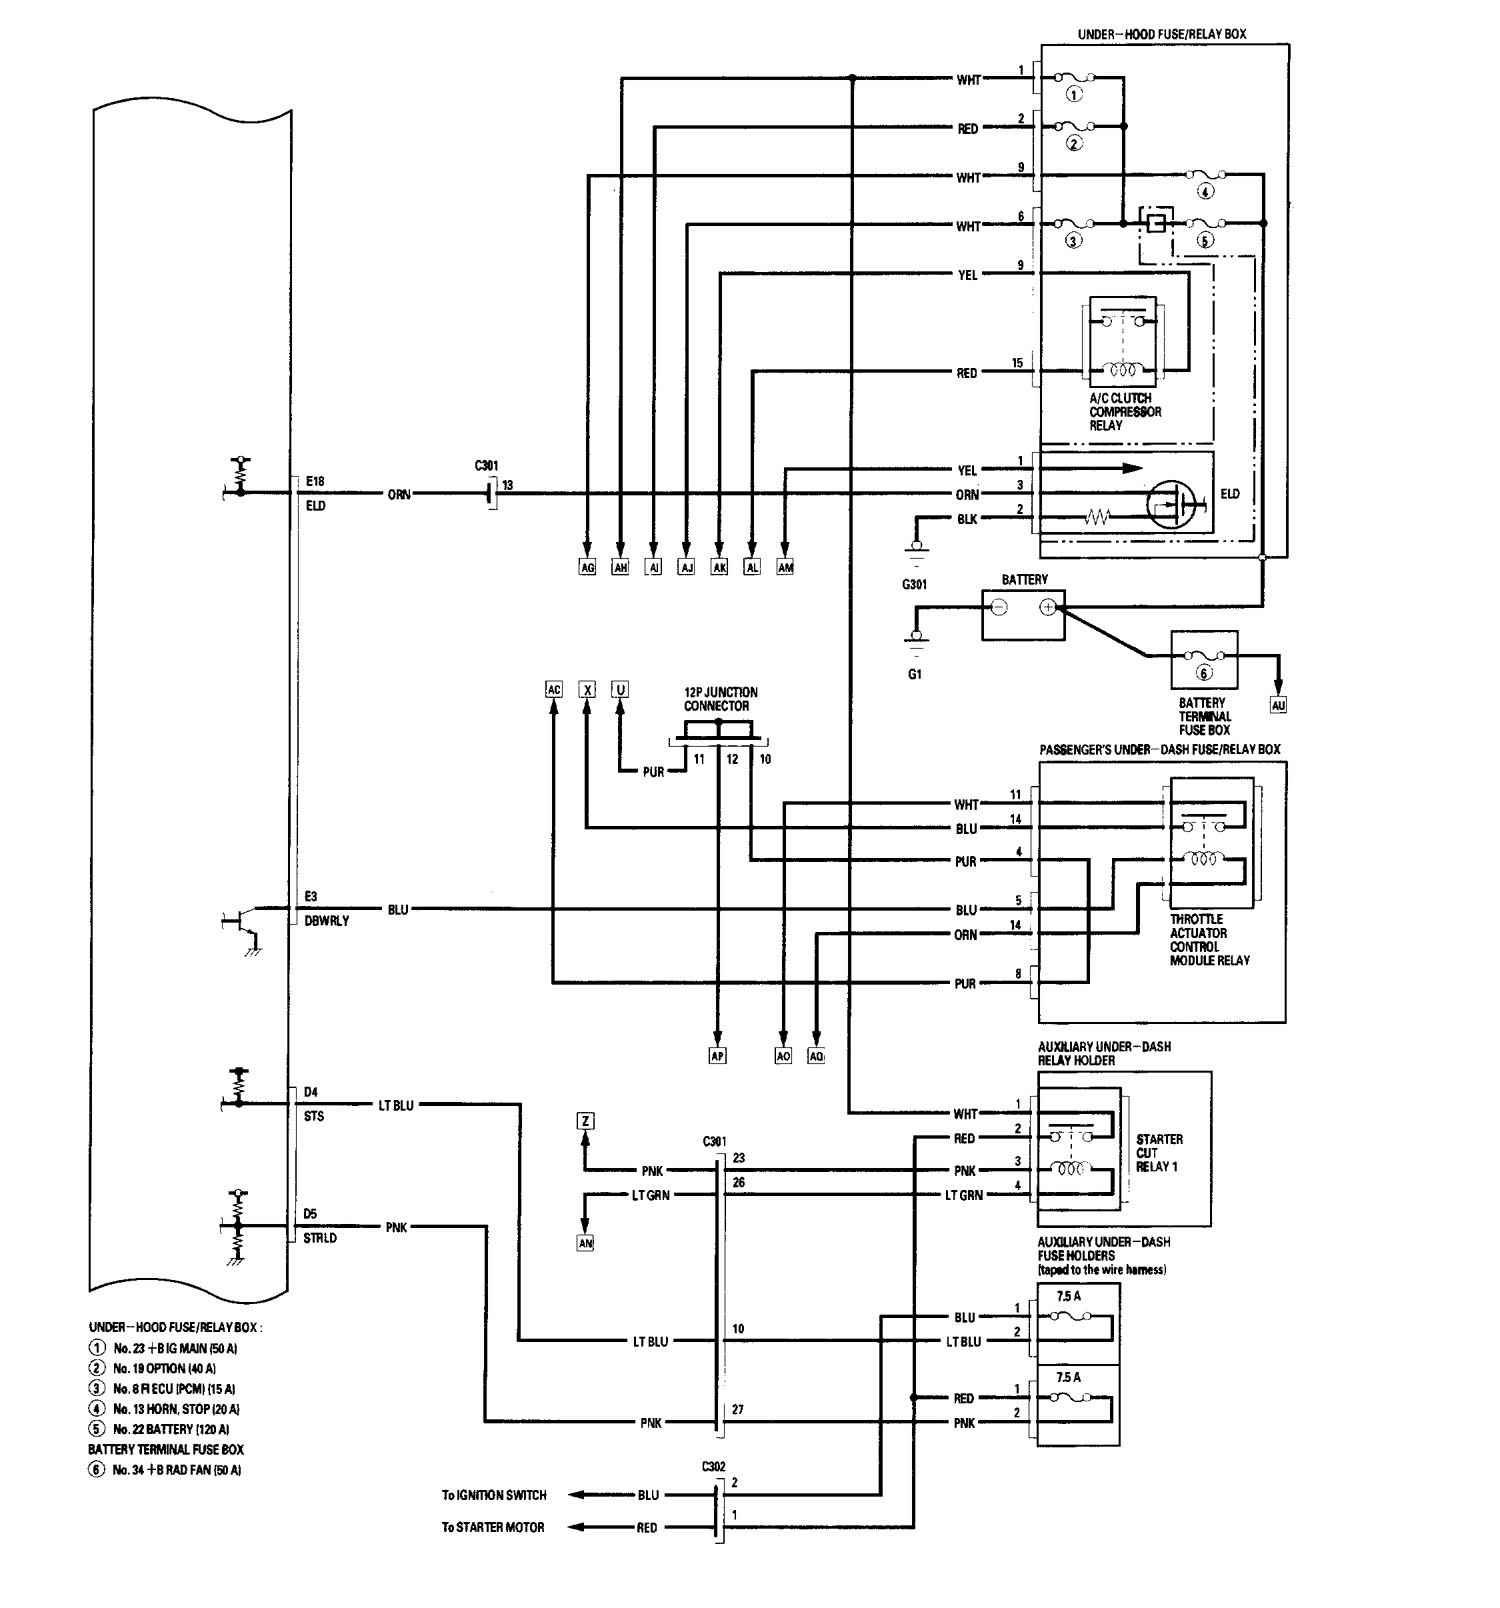 Acura Fuse Box Diagram 2006 Rl 35 Wiring Diagrams 3 5 Engine Cs Hacks Com Relay Assembly Light 2005 Tl